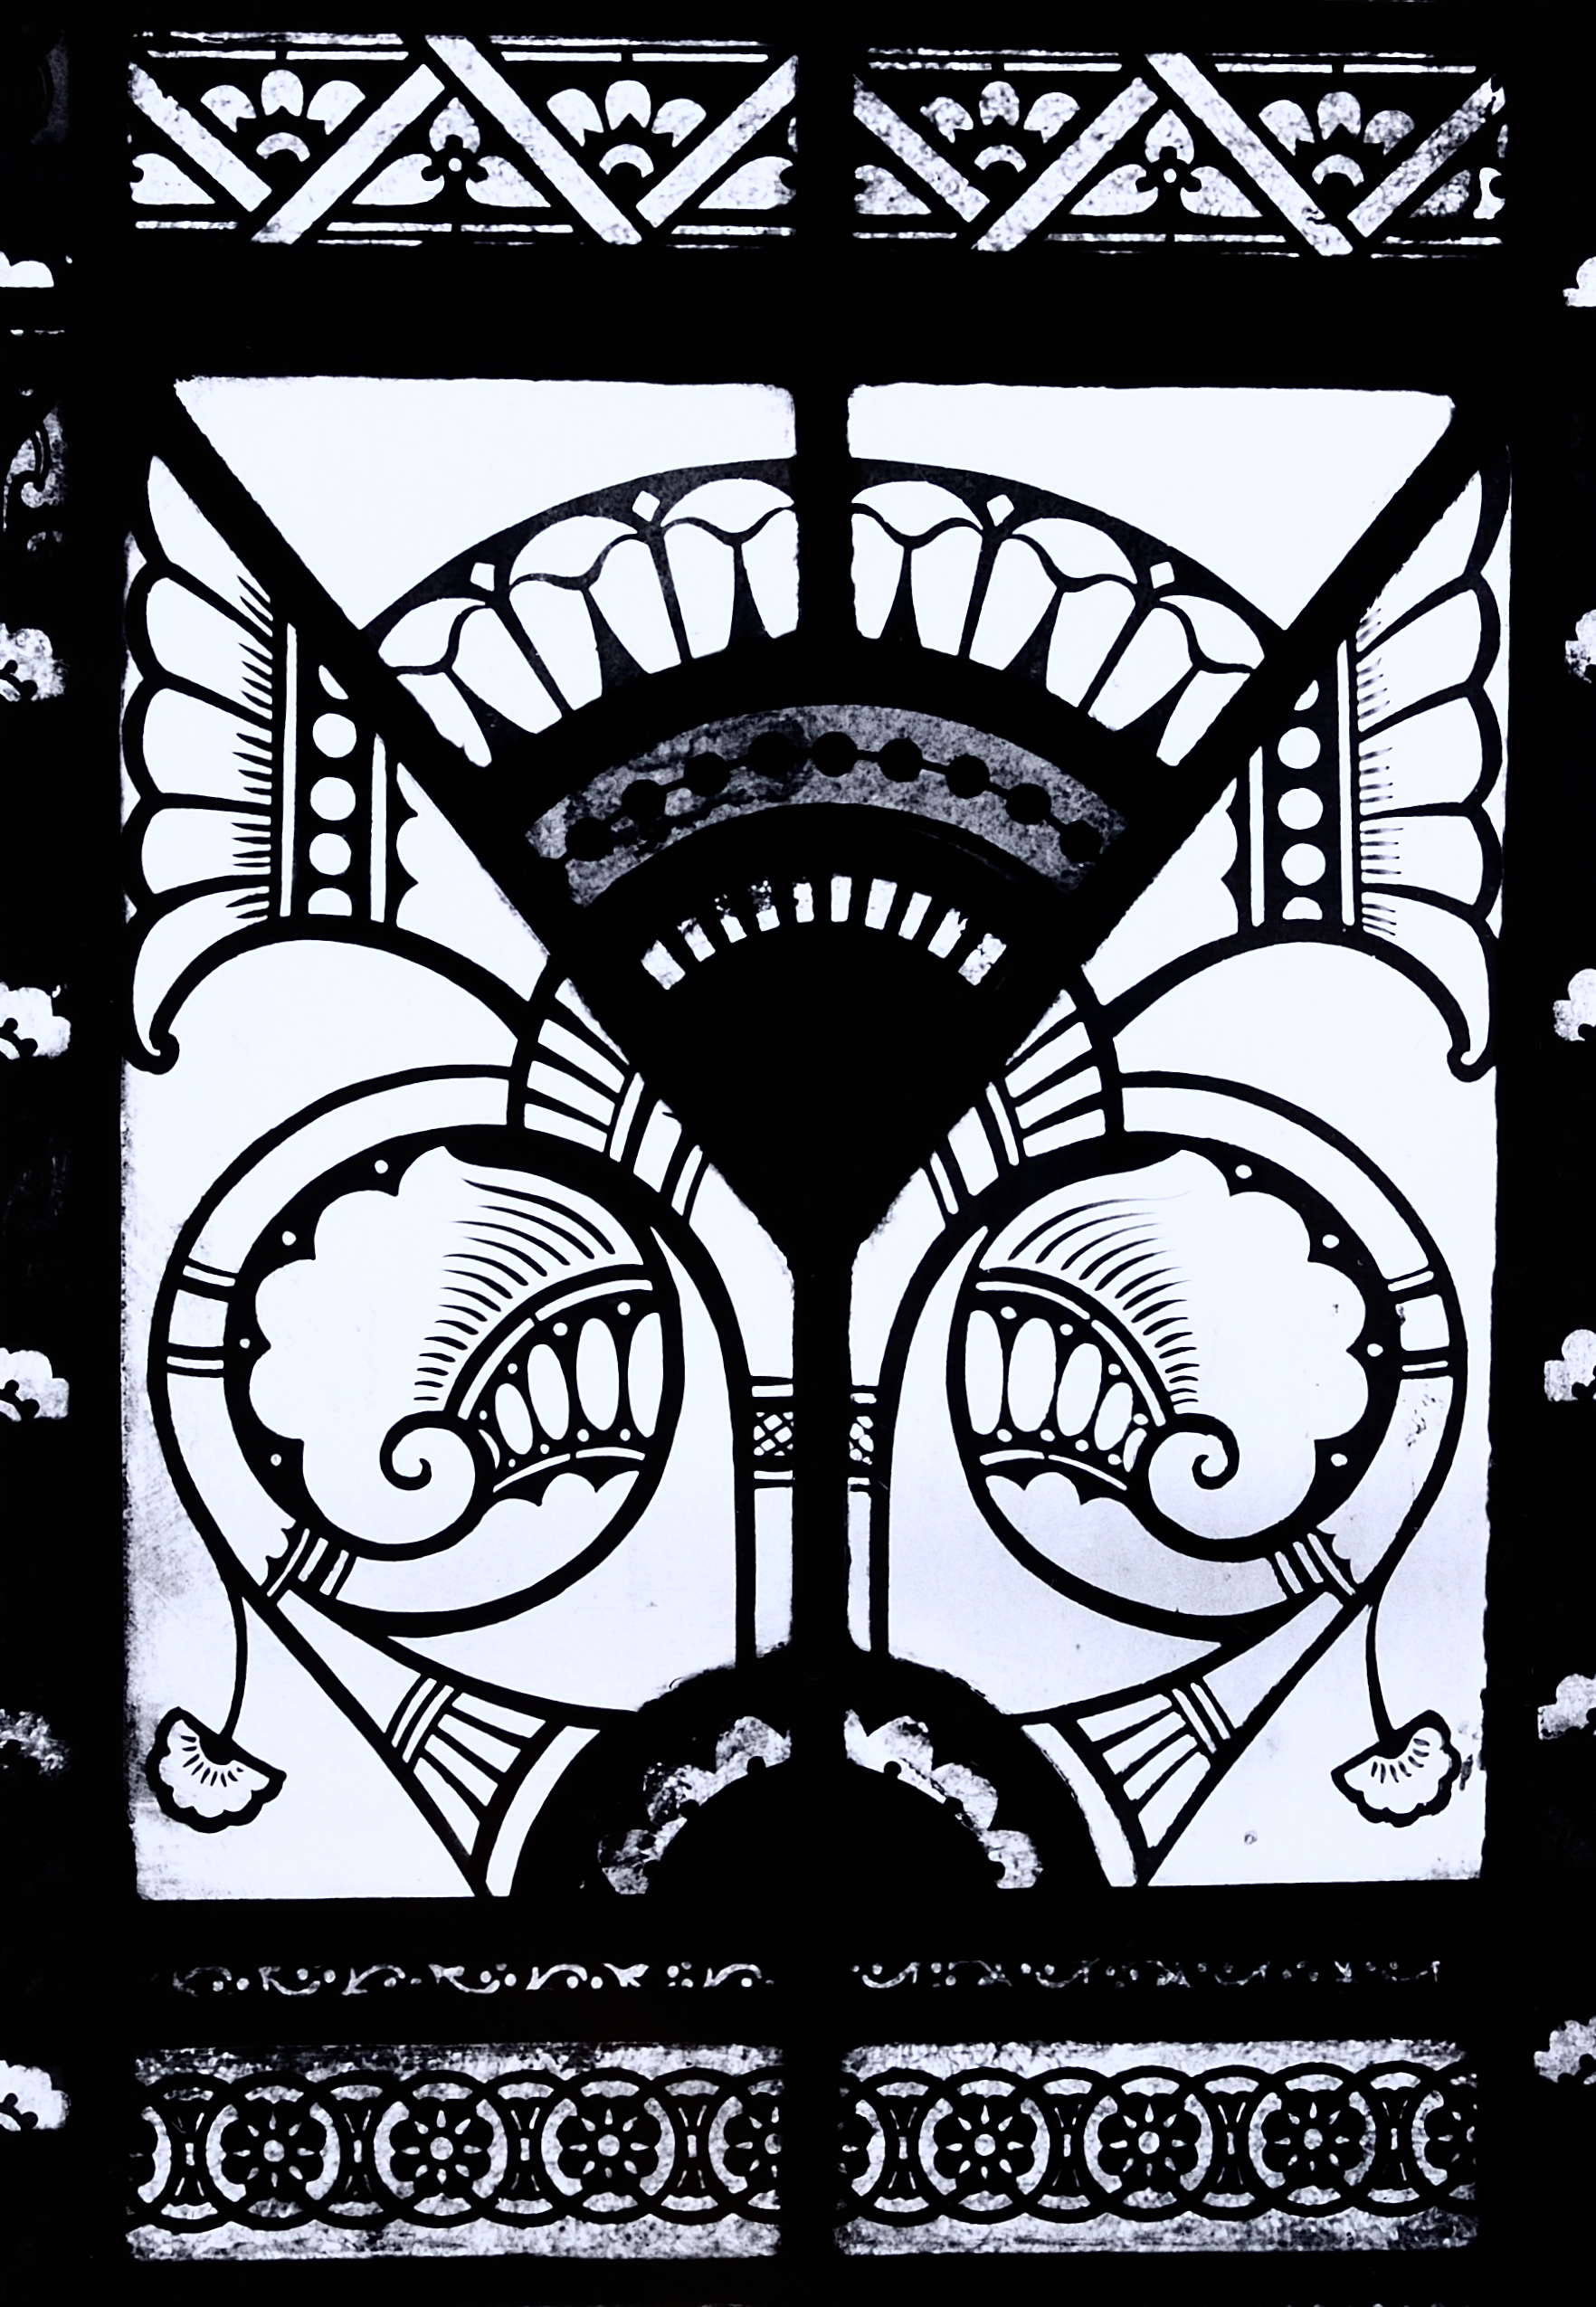 Unidentified American Studio, Possibly Charles Booth, Window Detail, About  1875, First Baptist Church, Poughkeepsie, New York. Photo: John Hupcey